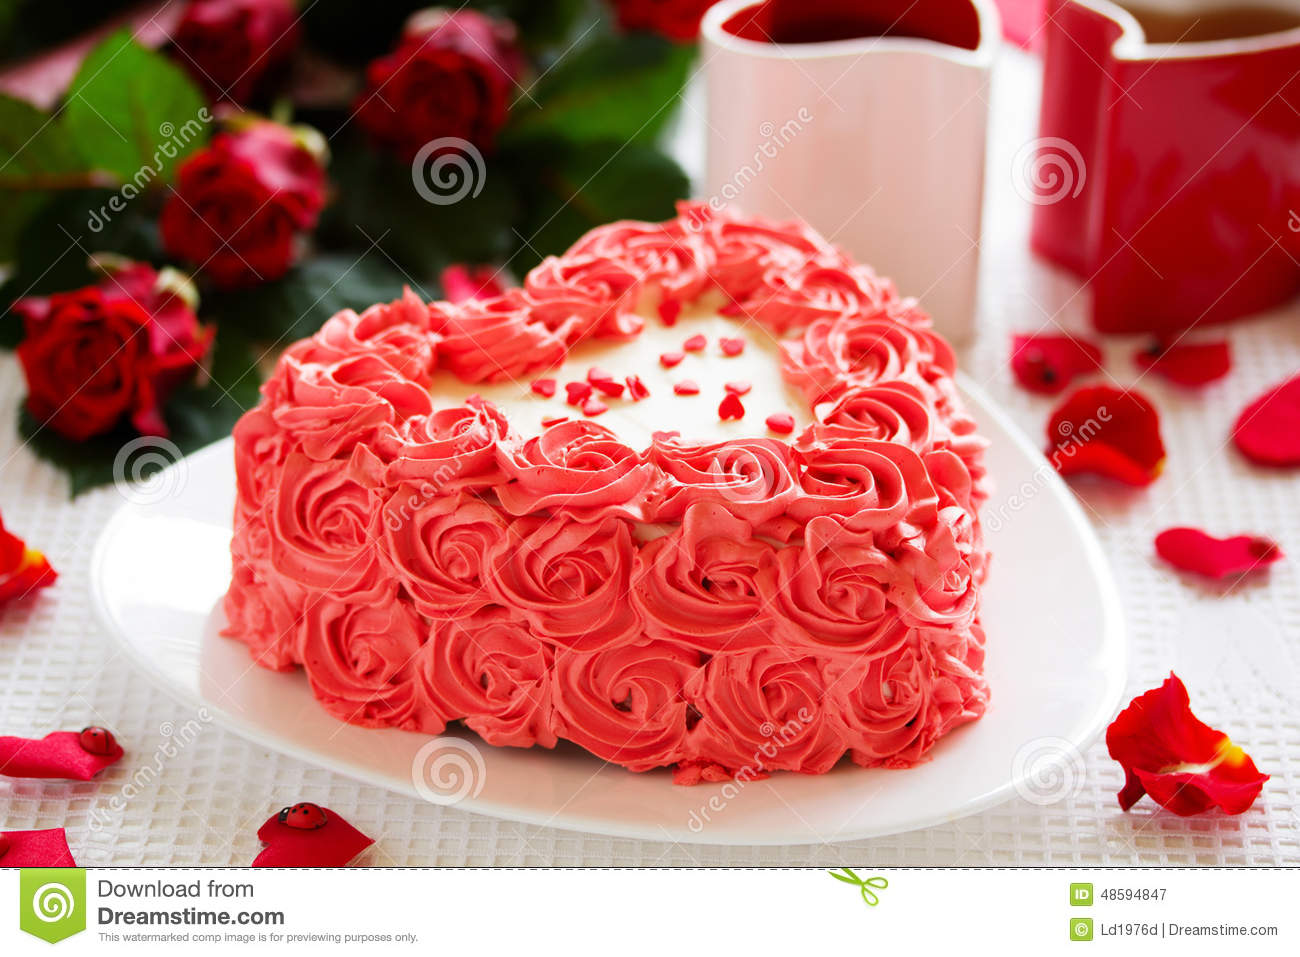 Magnificent Birthday Cake For Valentine S Day Stock Image Image Of Gourmet Funny Birthday Cards Online Elaedamsfinfo